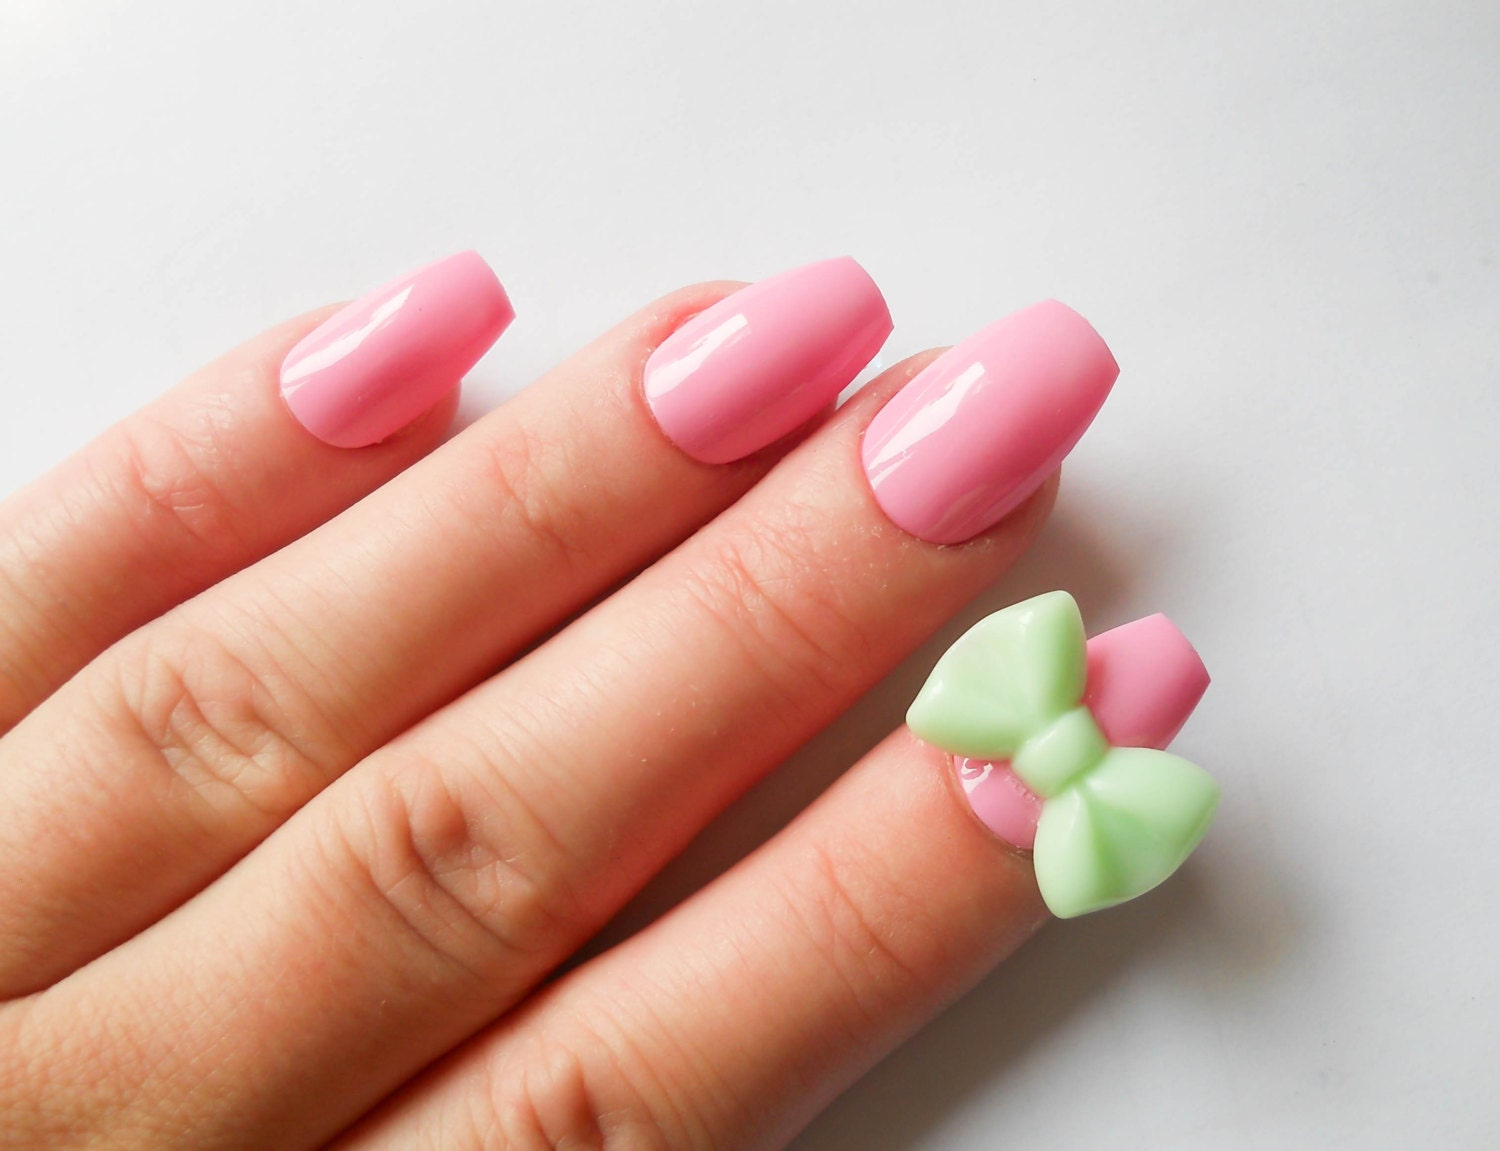 pink fake nails 3d nails false nails acrylic nails bow